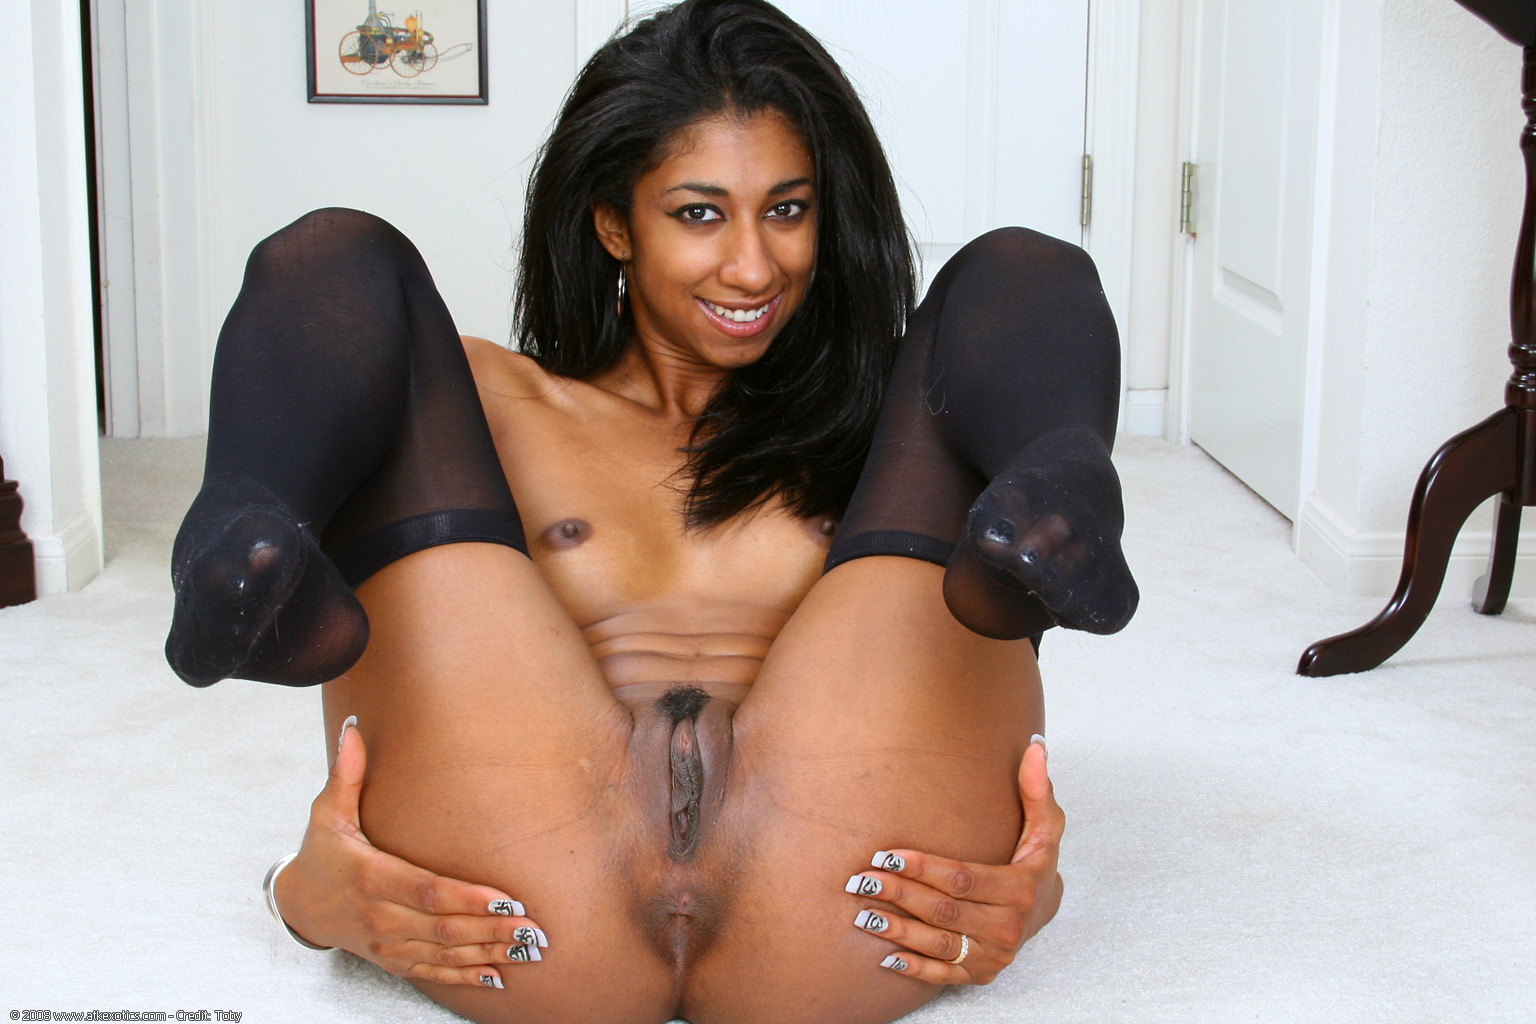 ebony-stocking-sex-ebony-foot